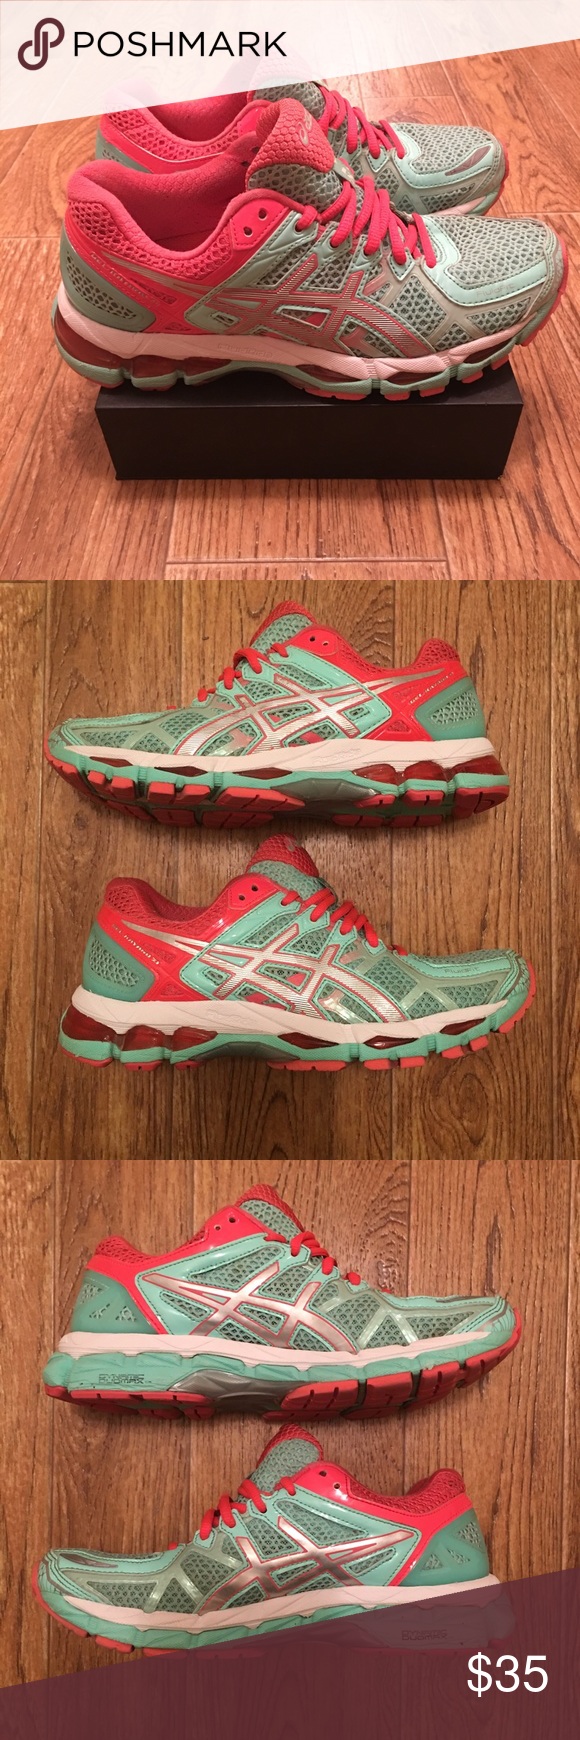 Asics  Gel-Kayano Z1 Women s Running Shoes (used) Used Asics Gel-Kayano Z1  womens running shoes. Good condition (see photos). fdac5dae8